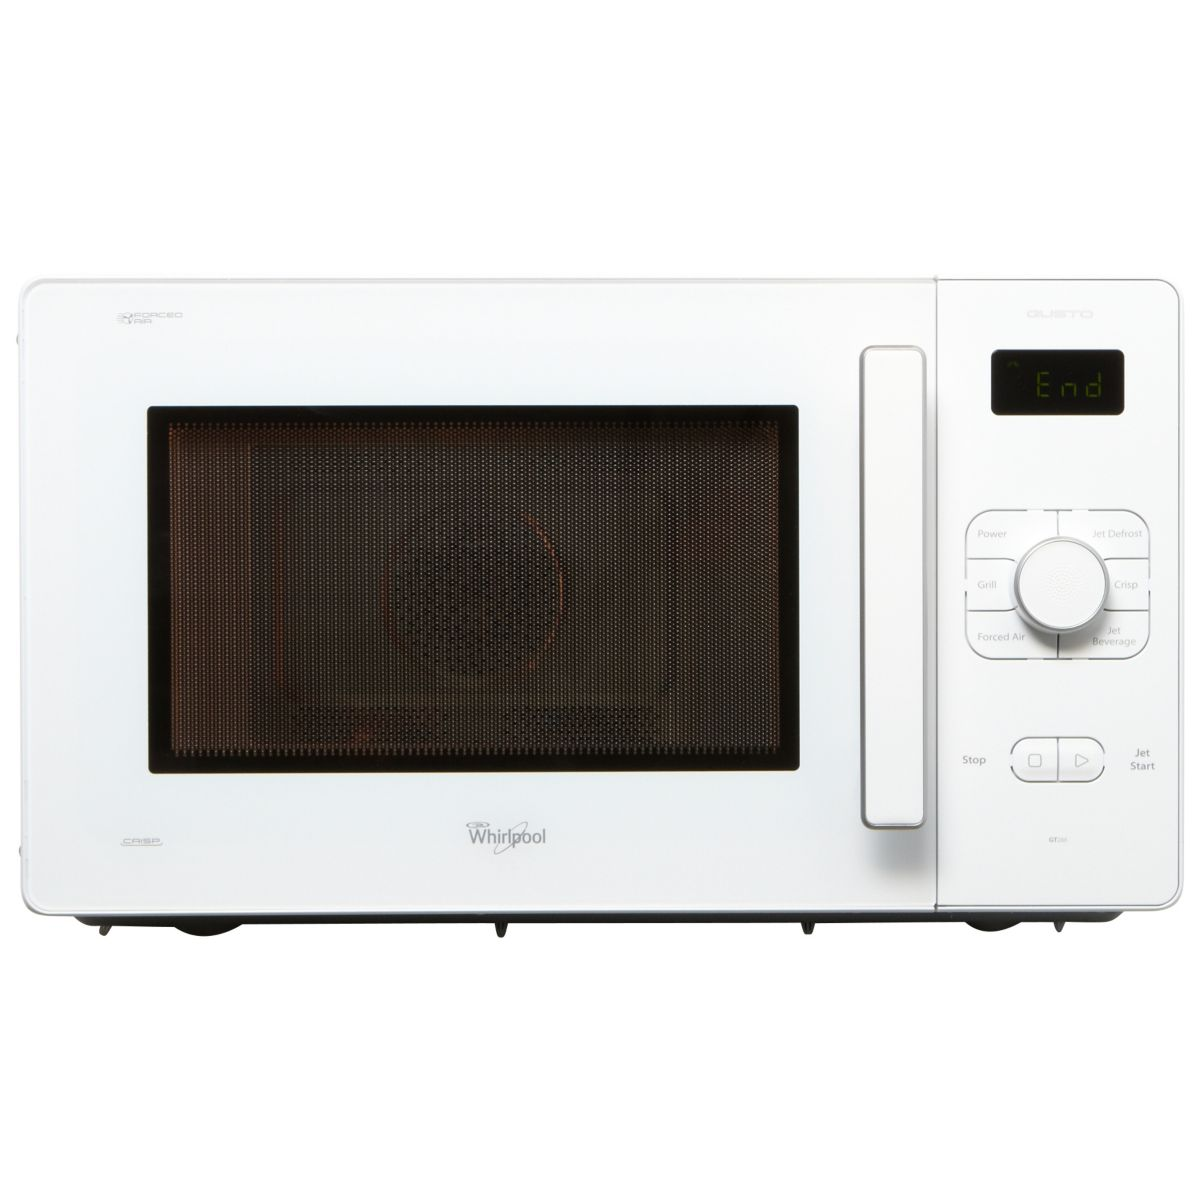 Micro Prix Whirlpool Gt288 Micro Ondes Avec Grill Comparer Avec